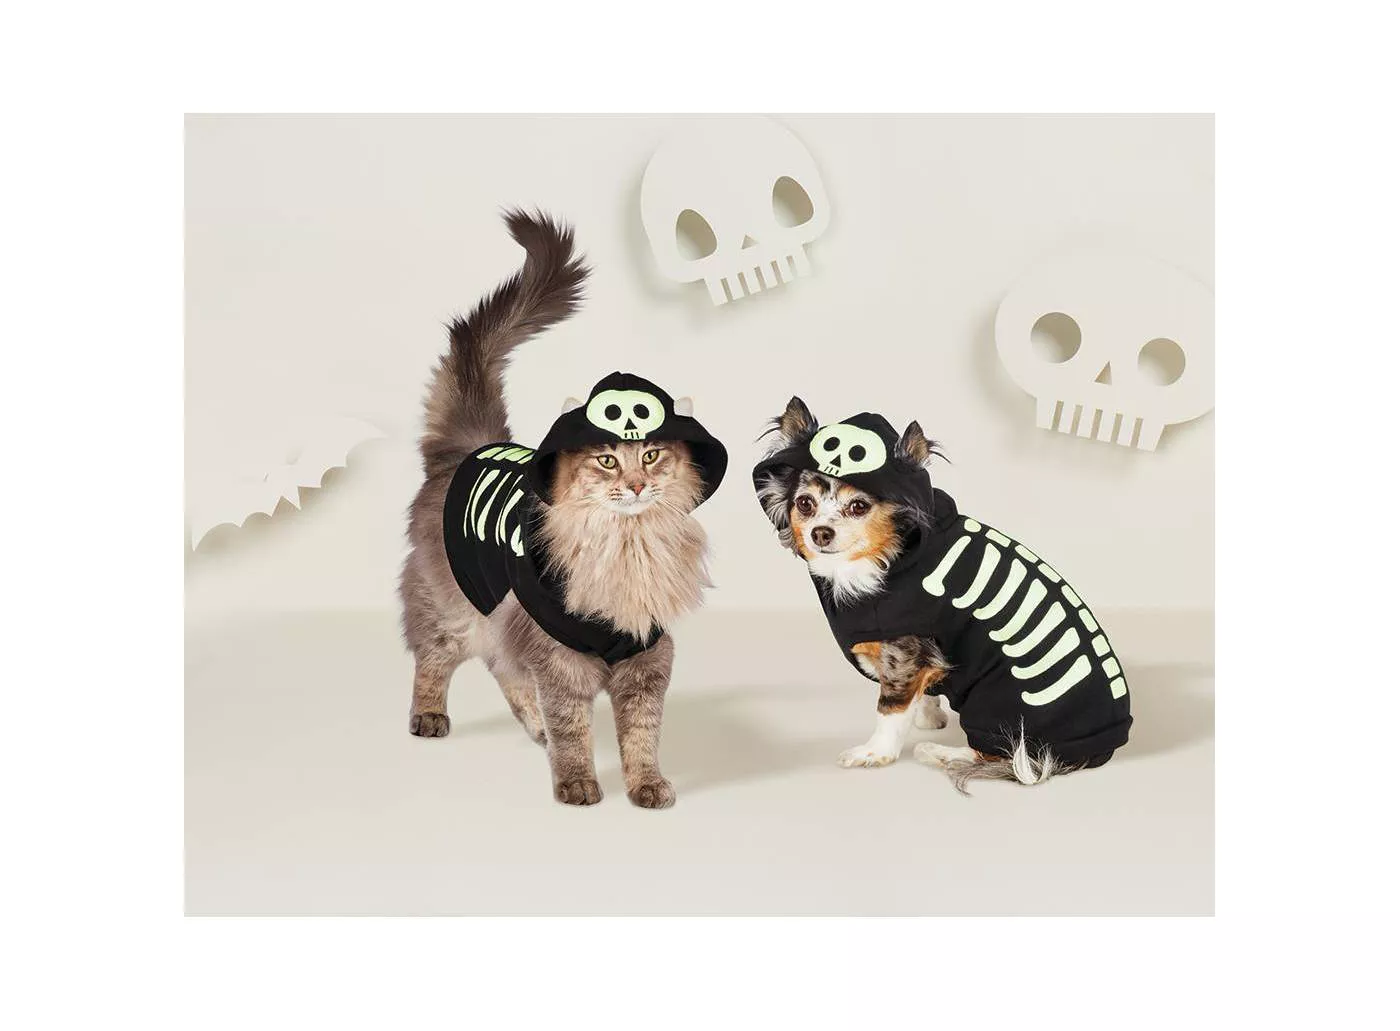 dog and cat wearing skeleton halloween costumes